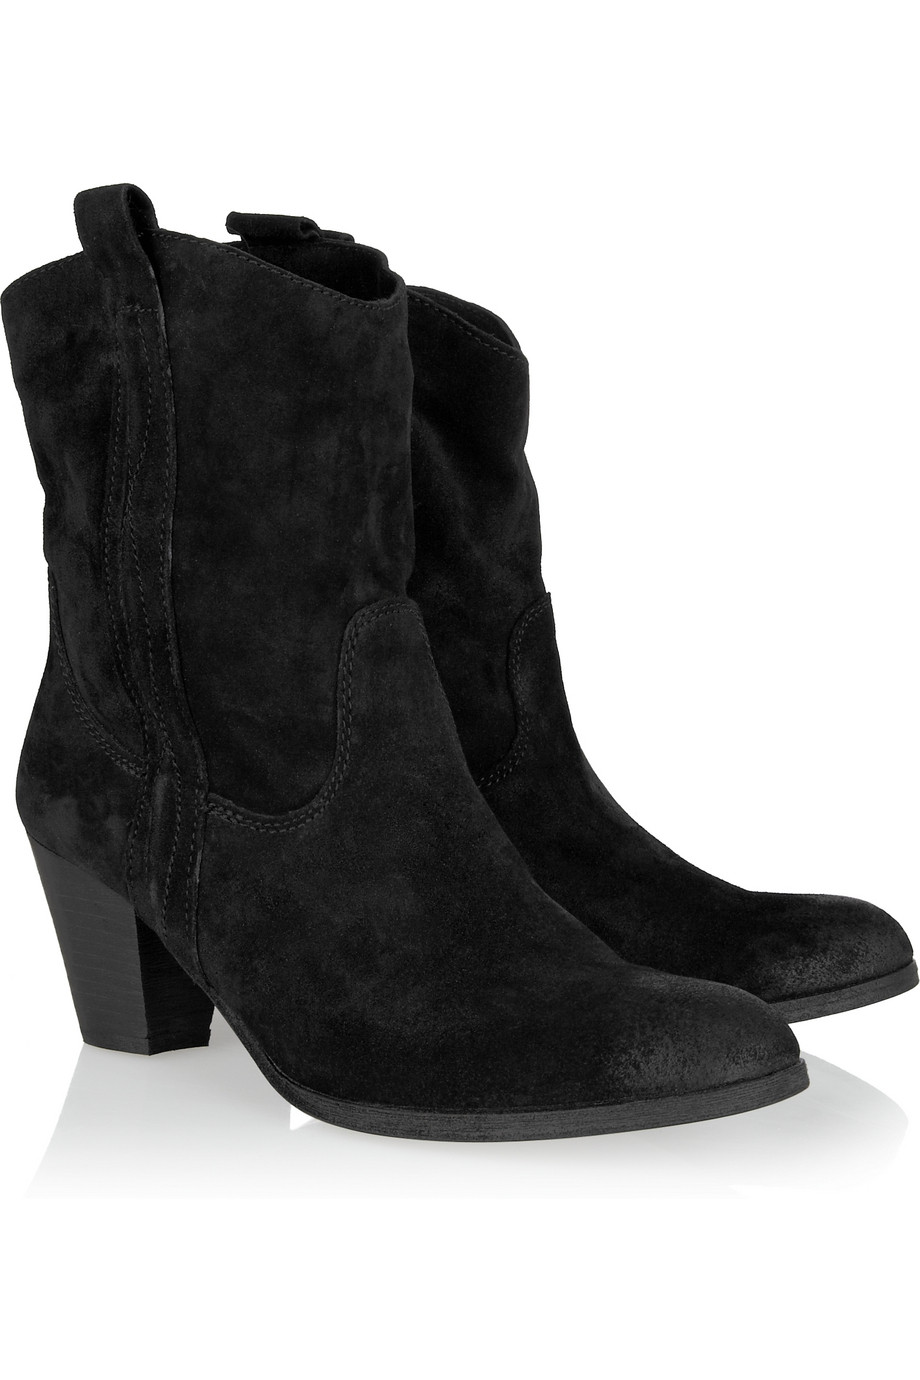 black suede western ankle boots | Gommap Blog